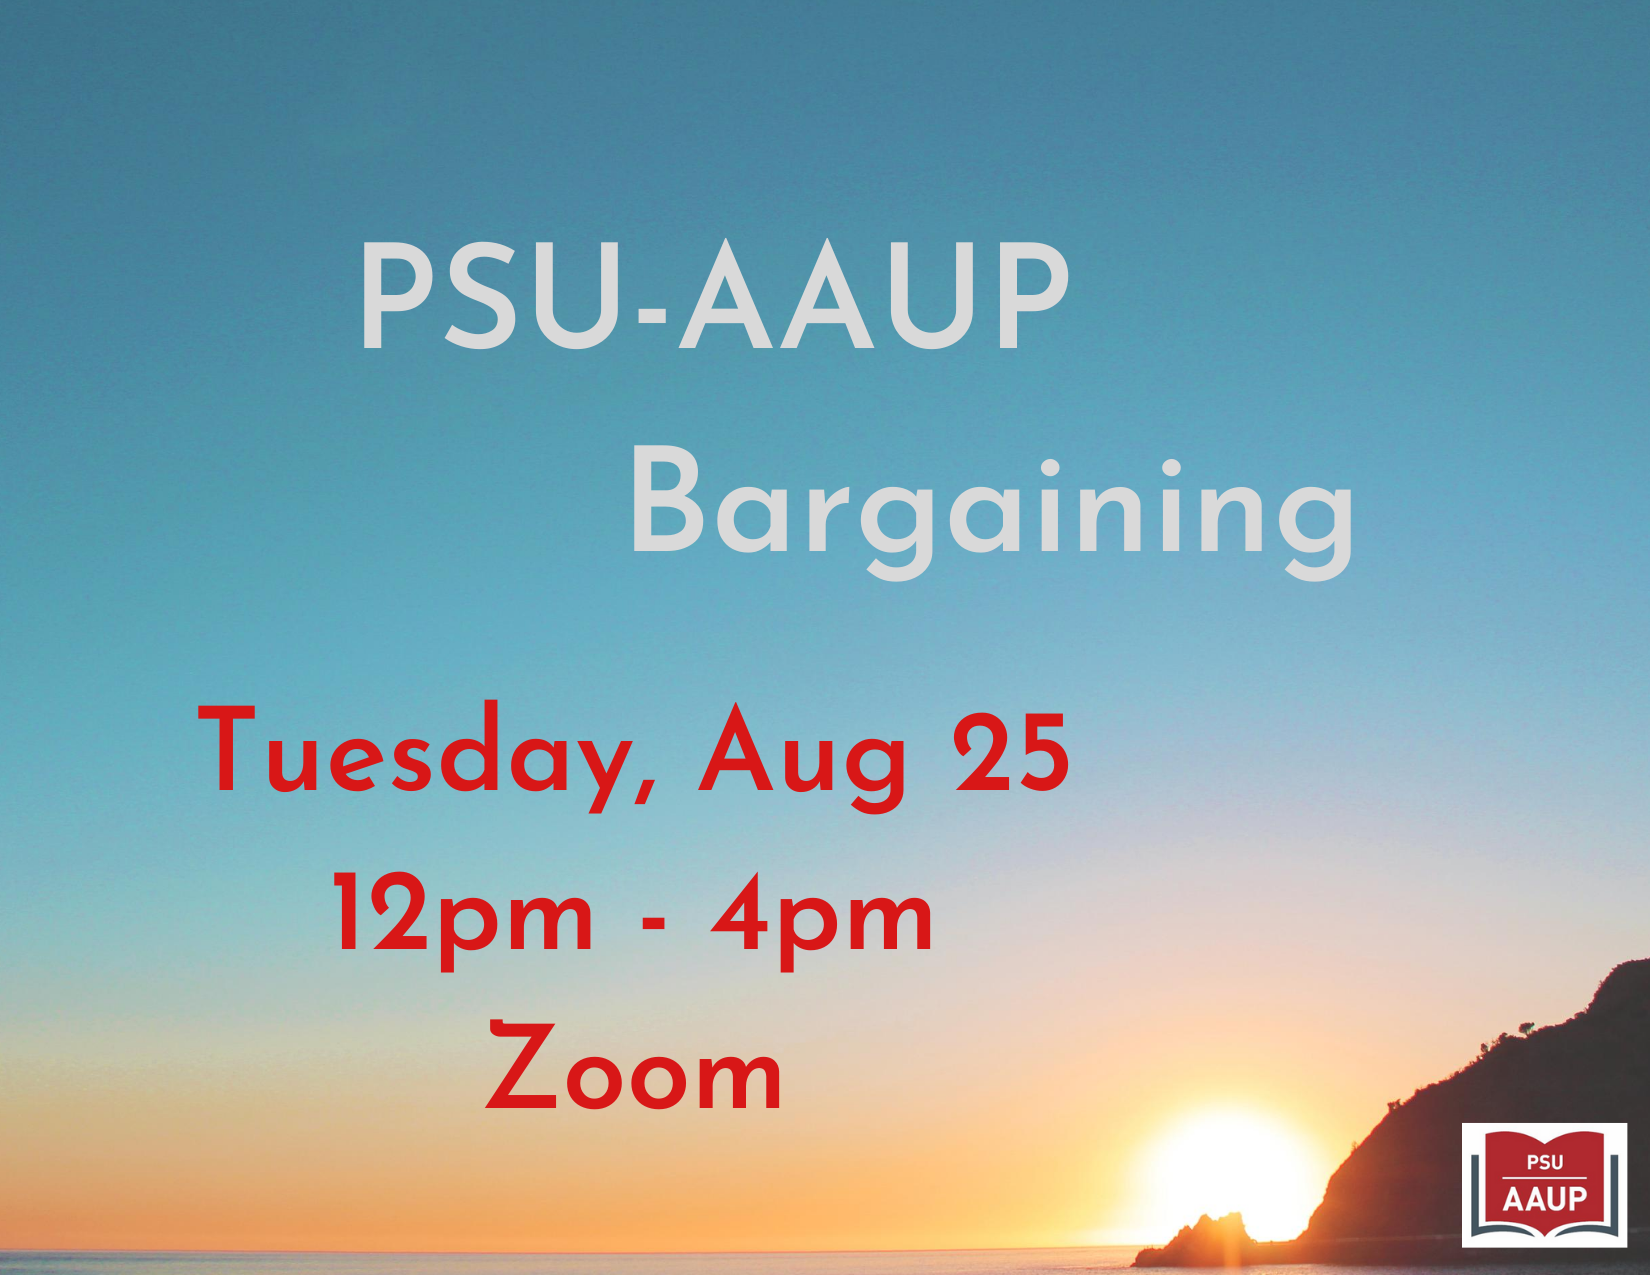 PSU-AAUP Bargaining - August 25